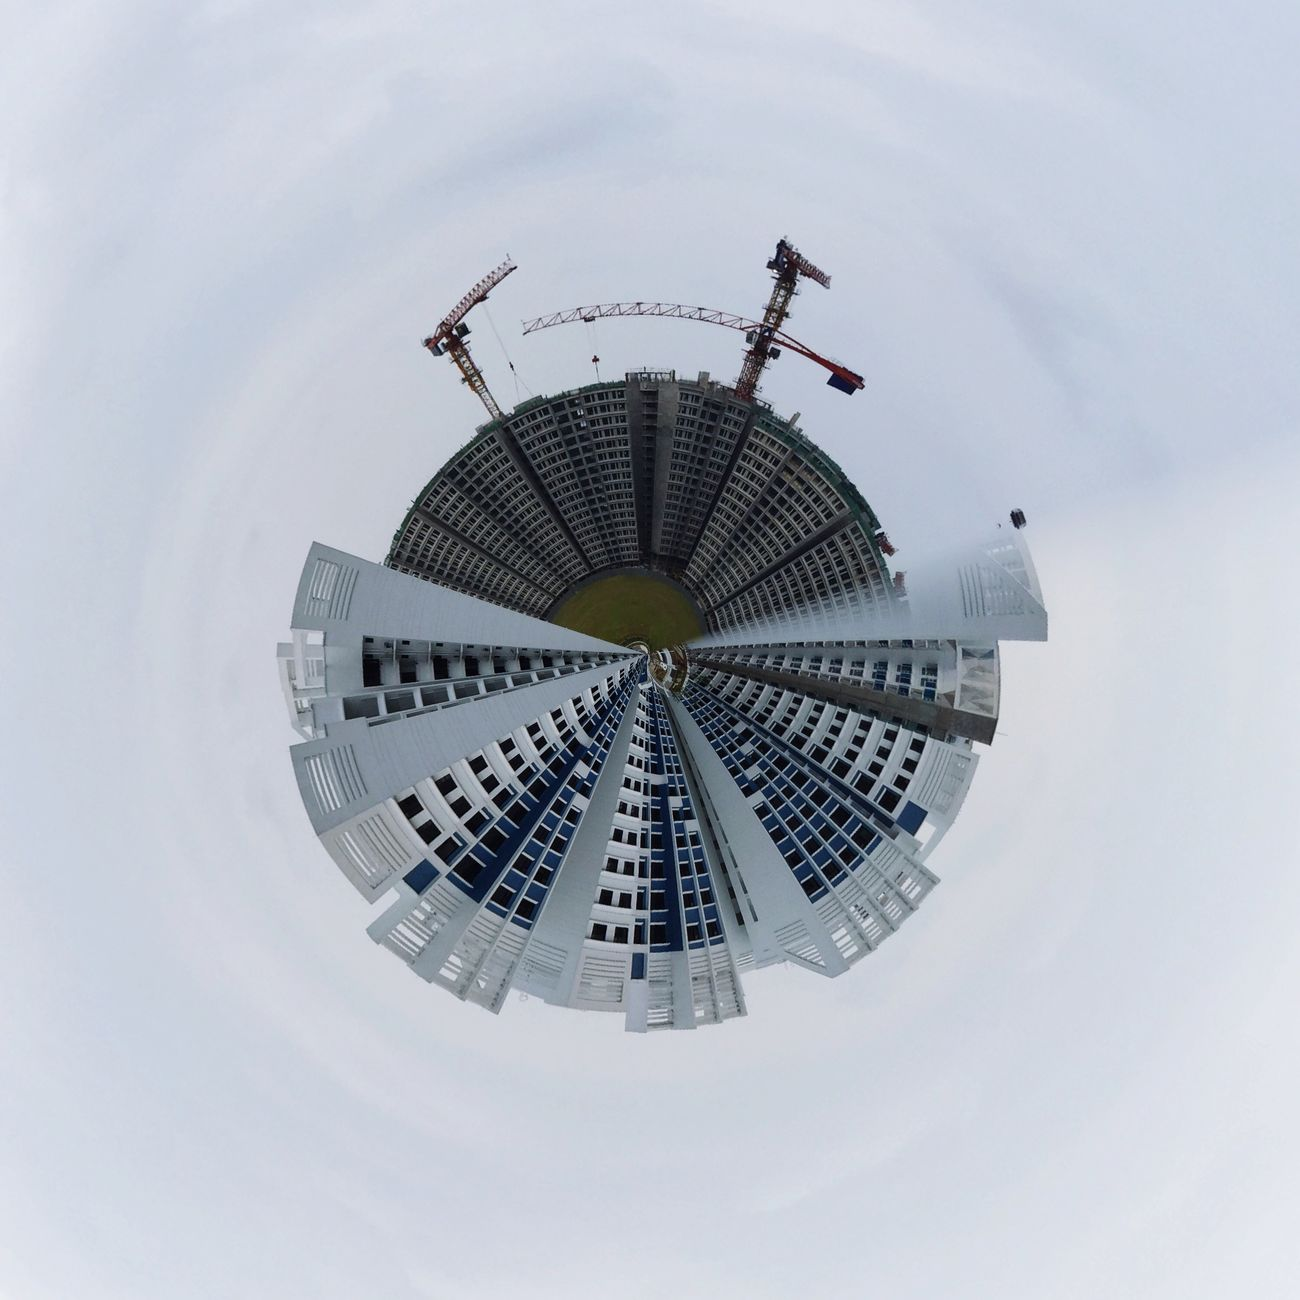 Planet Under Construction. Tinyplanet Tinyplanets LittlePlanet Tinyworld Tinyshutter